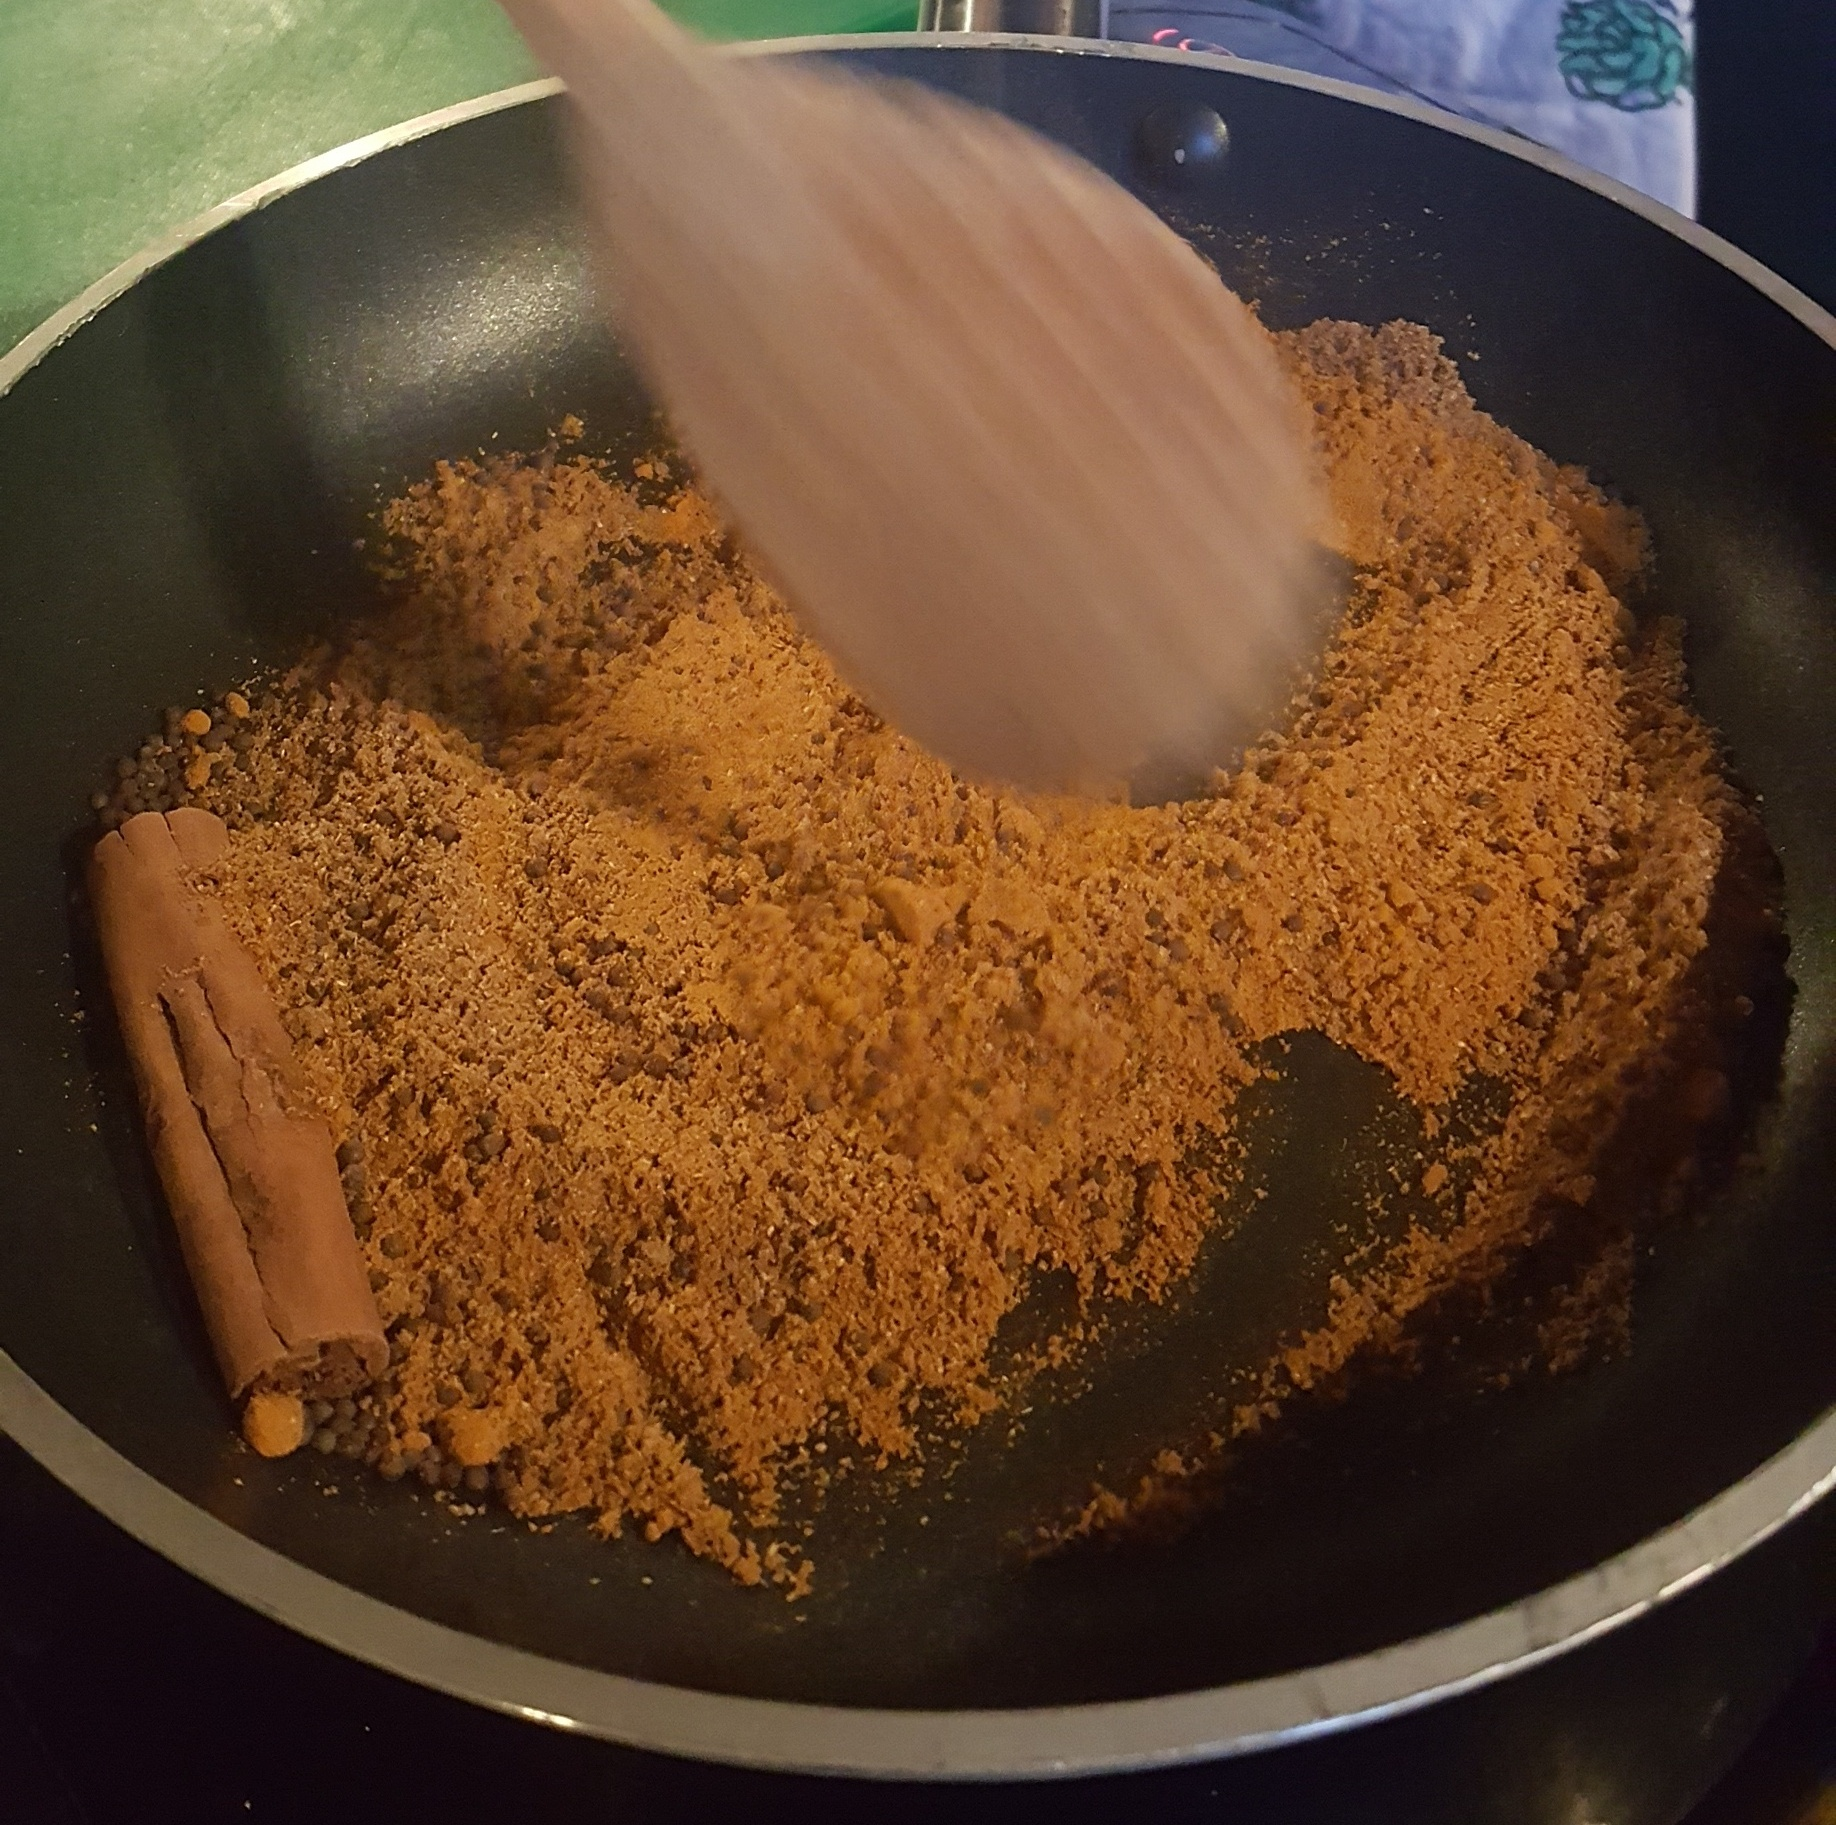 A frying pan with spices and a cinnamon stick